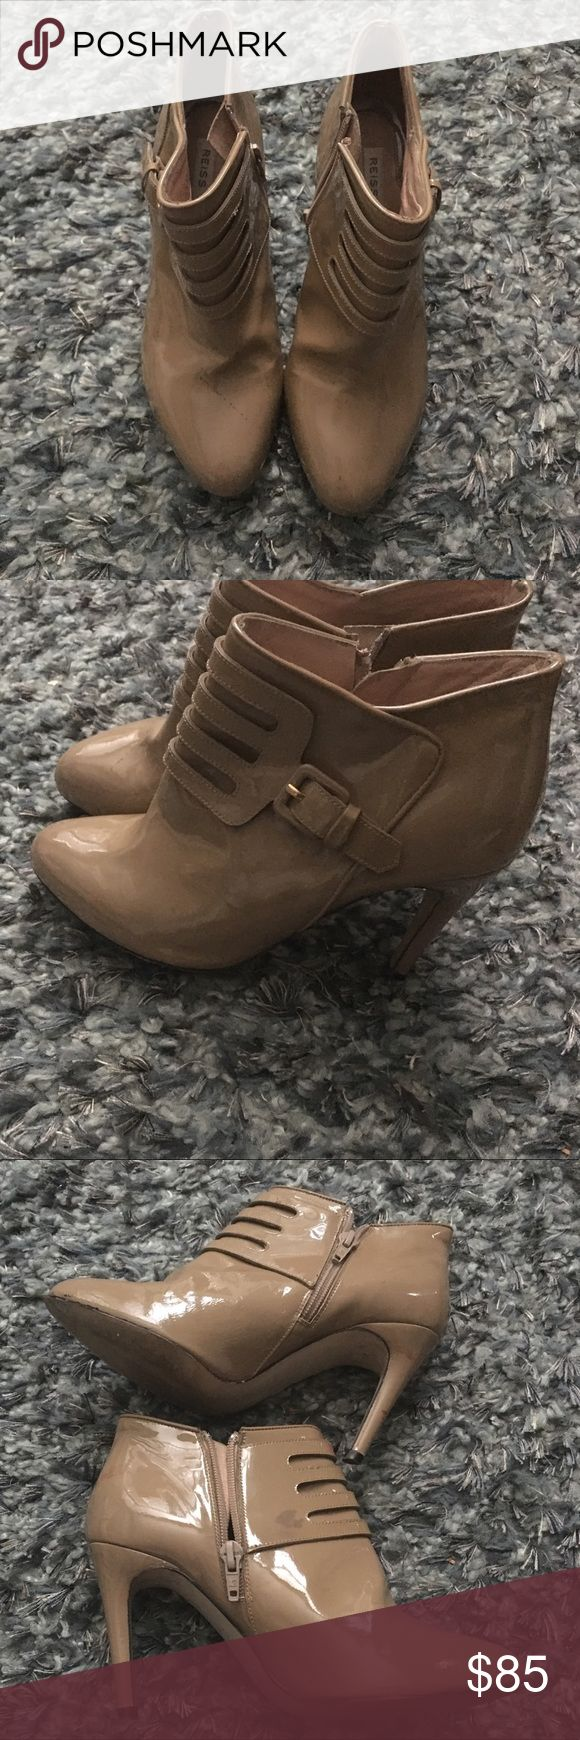 Reiss patent boots Tan  patent boots Reiss Shoes Heeled Boots